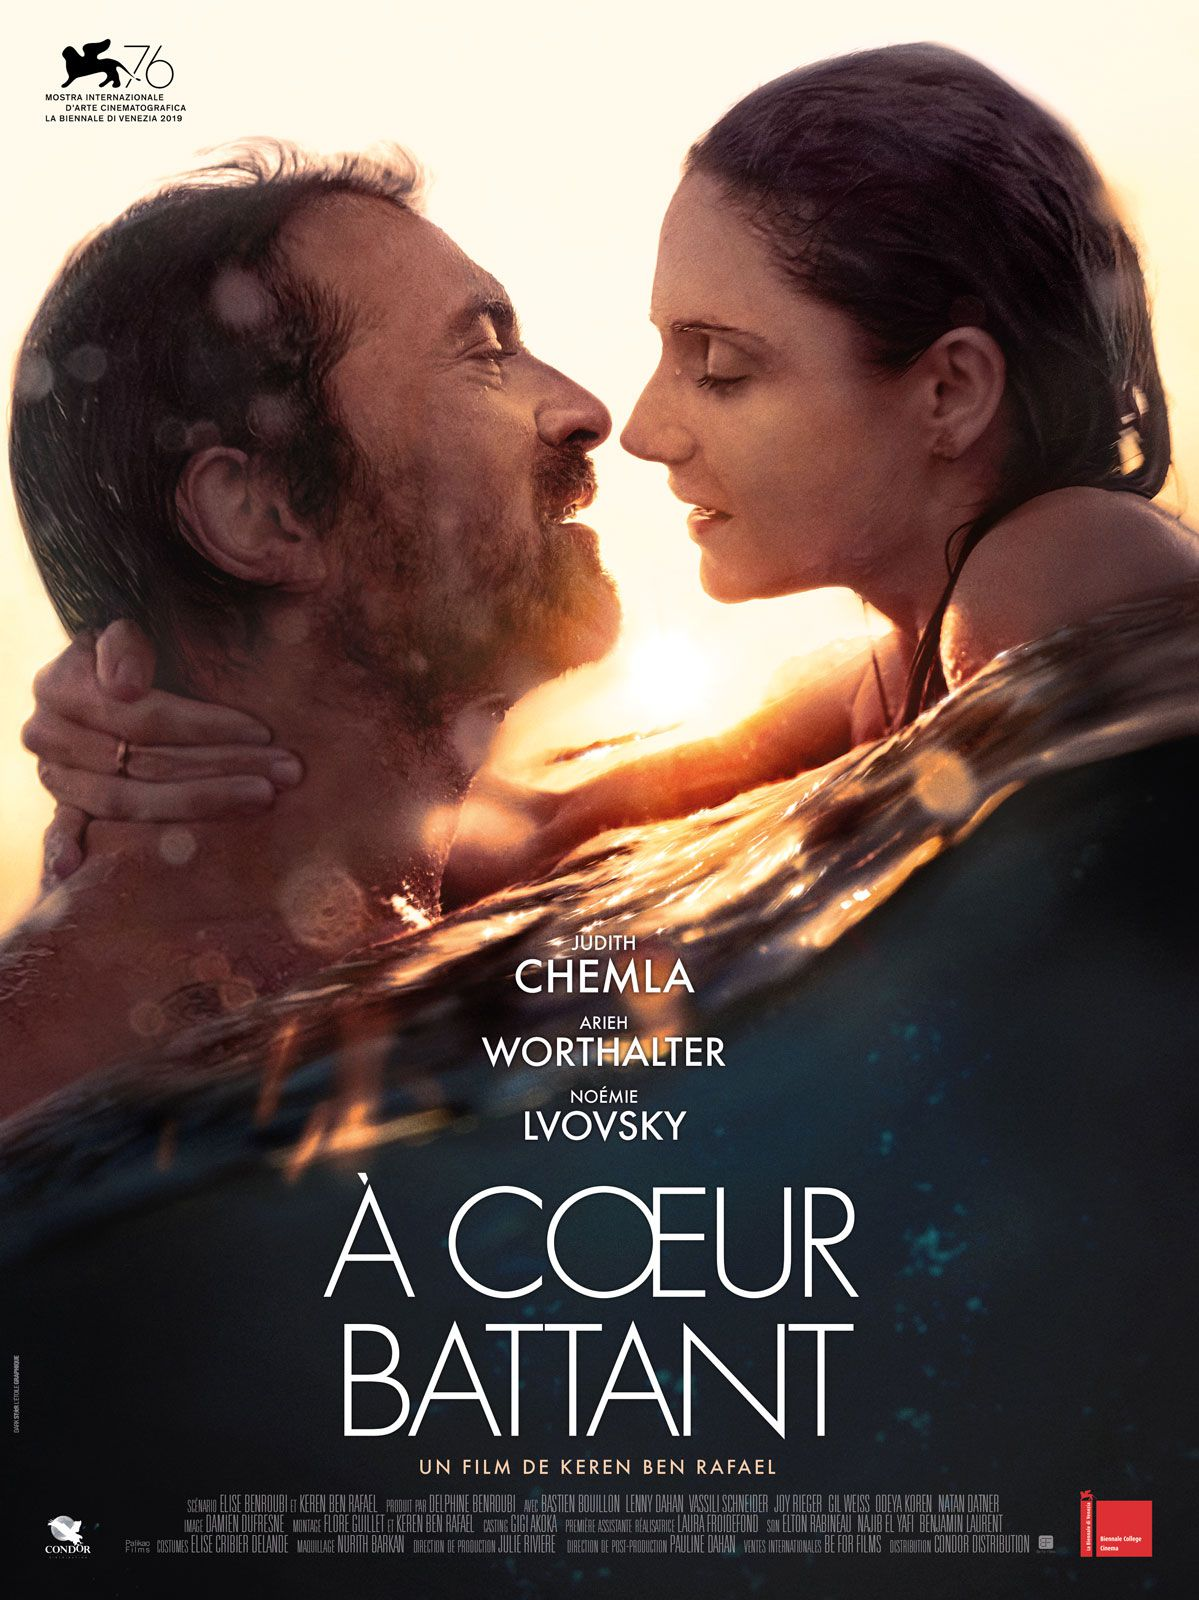 A cœur battant - Film (2020) streaming VF gratuit complet